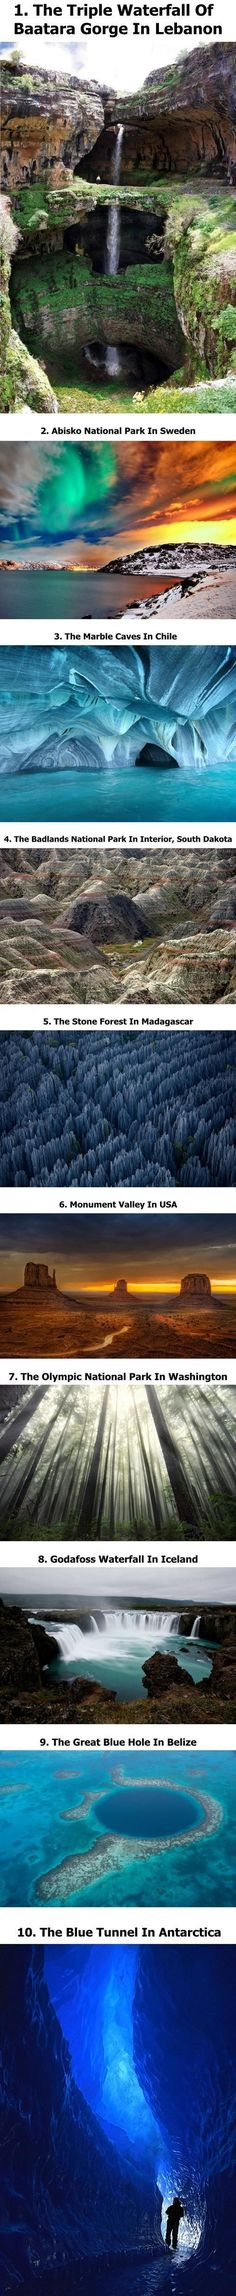 Awesome Places Worth Visiting!